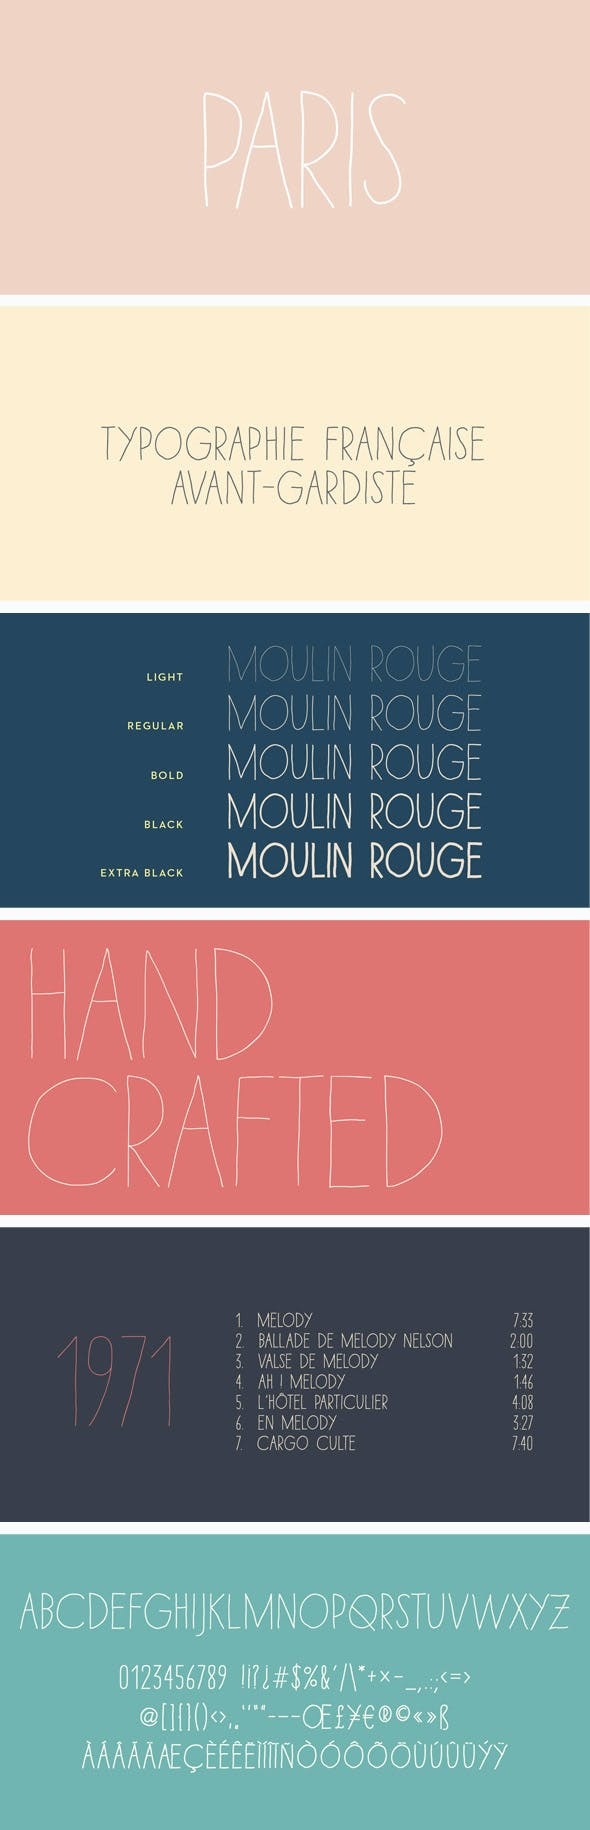 Download Paris Font Pack by SCType | GraphicRiver